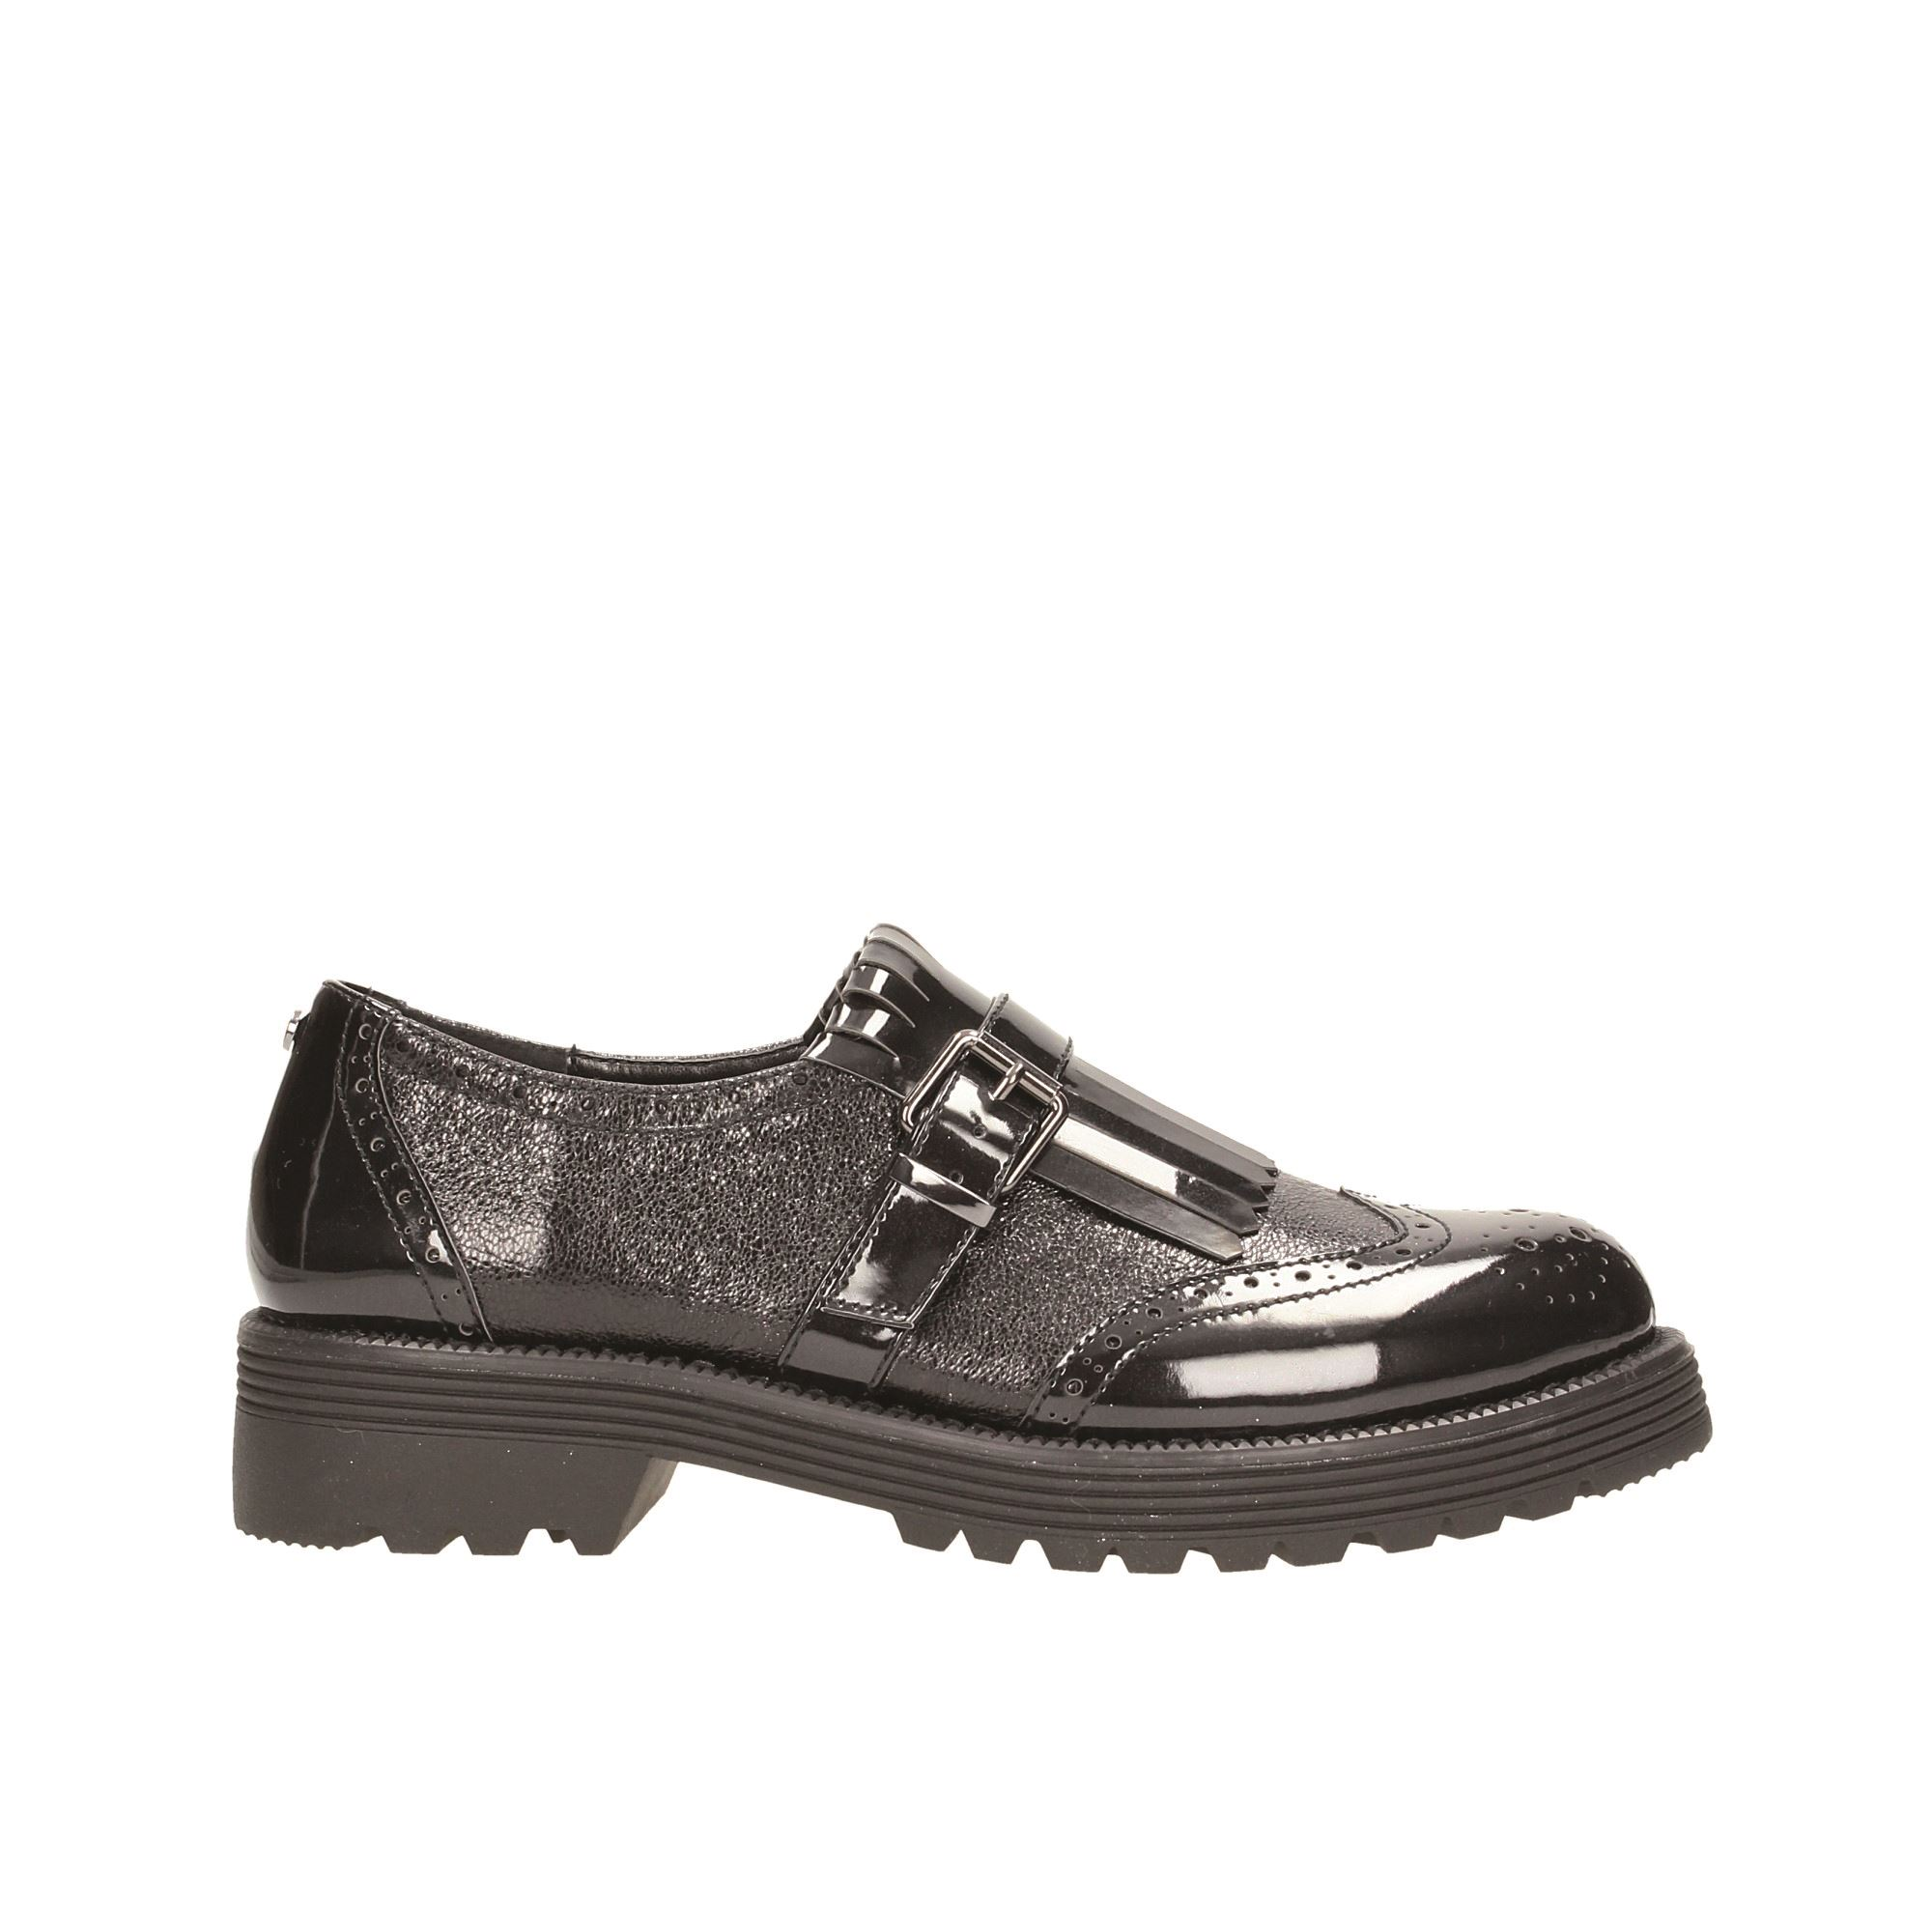 Tata Italia Shoes Woman Mocassini Black 17W36-3